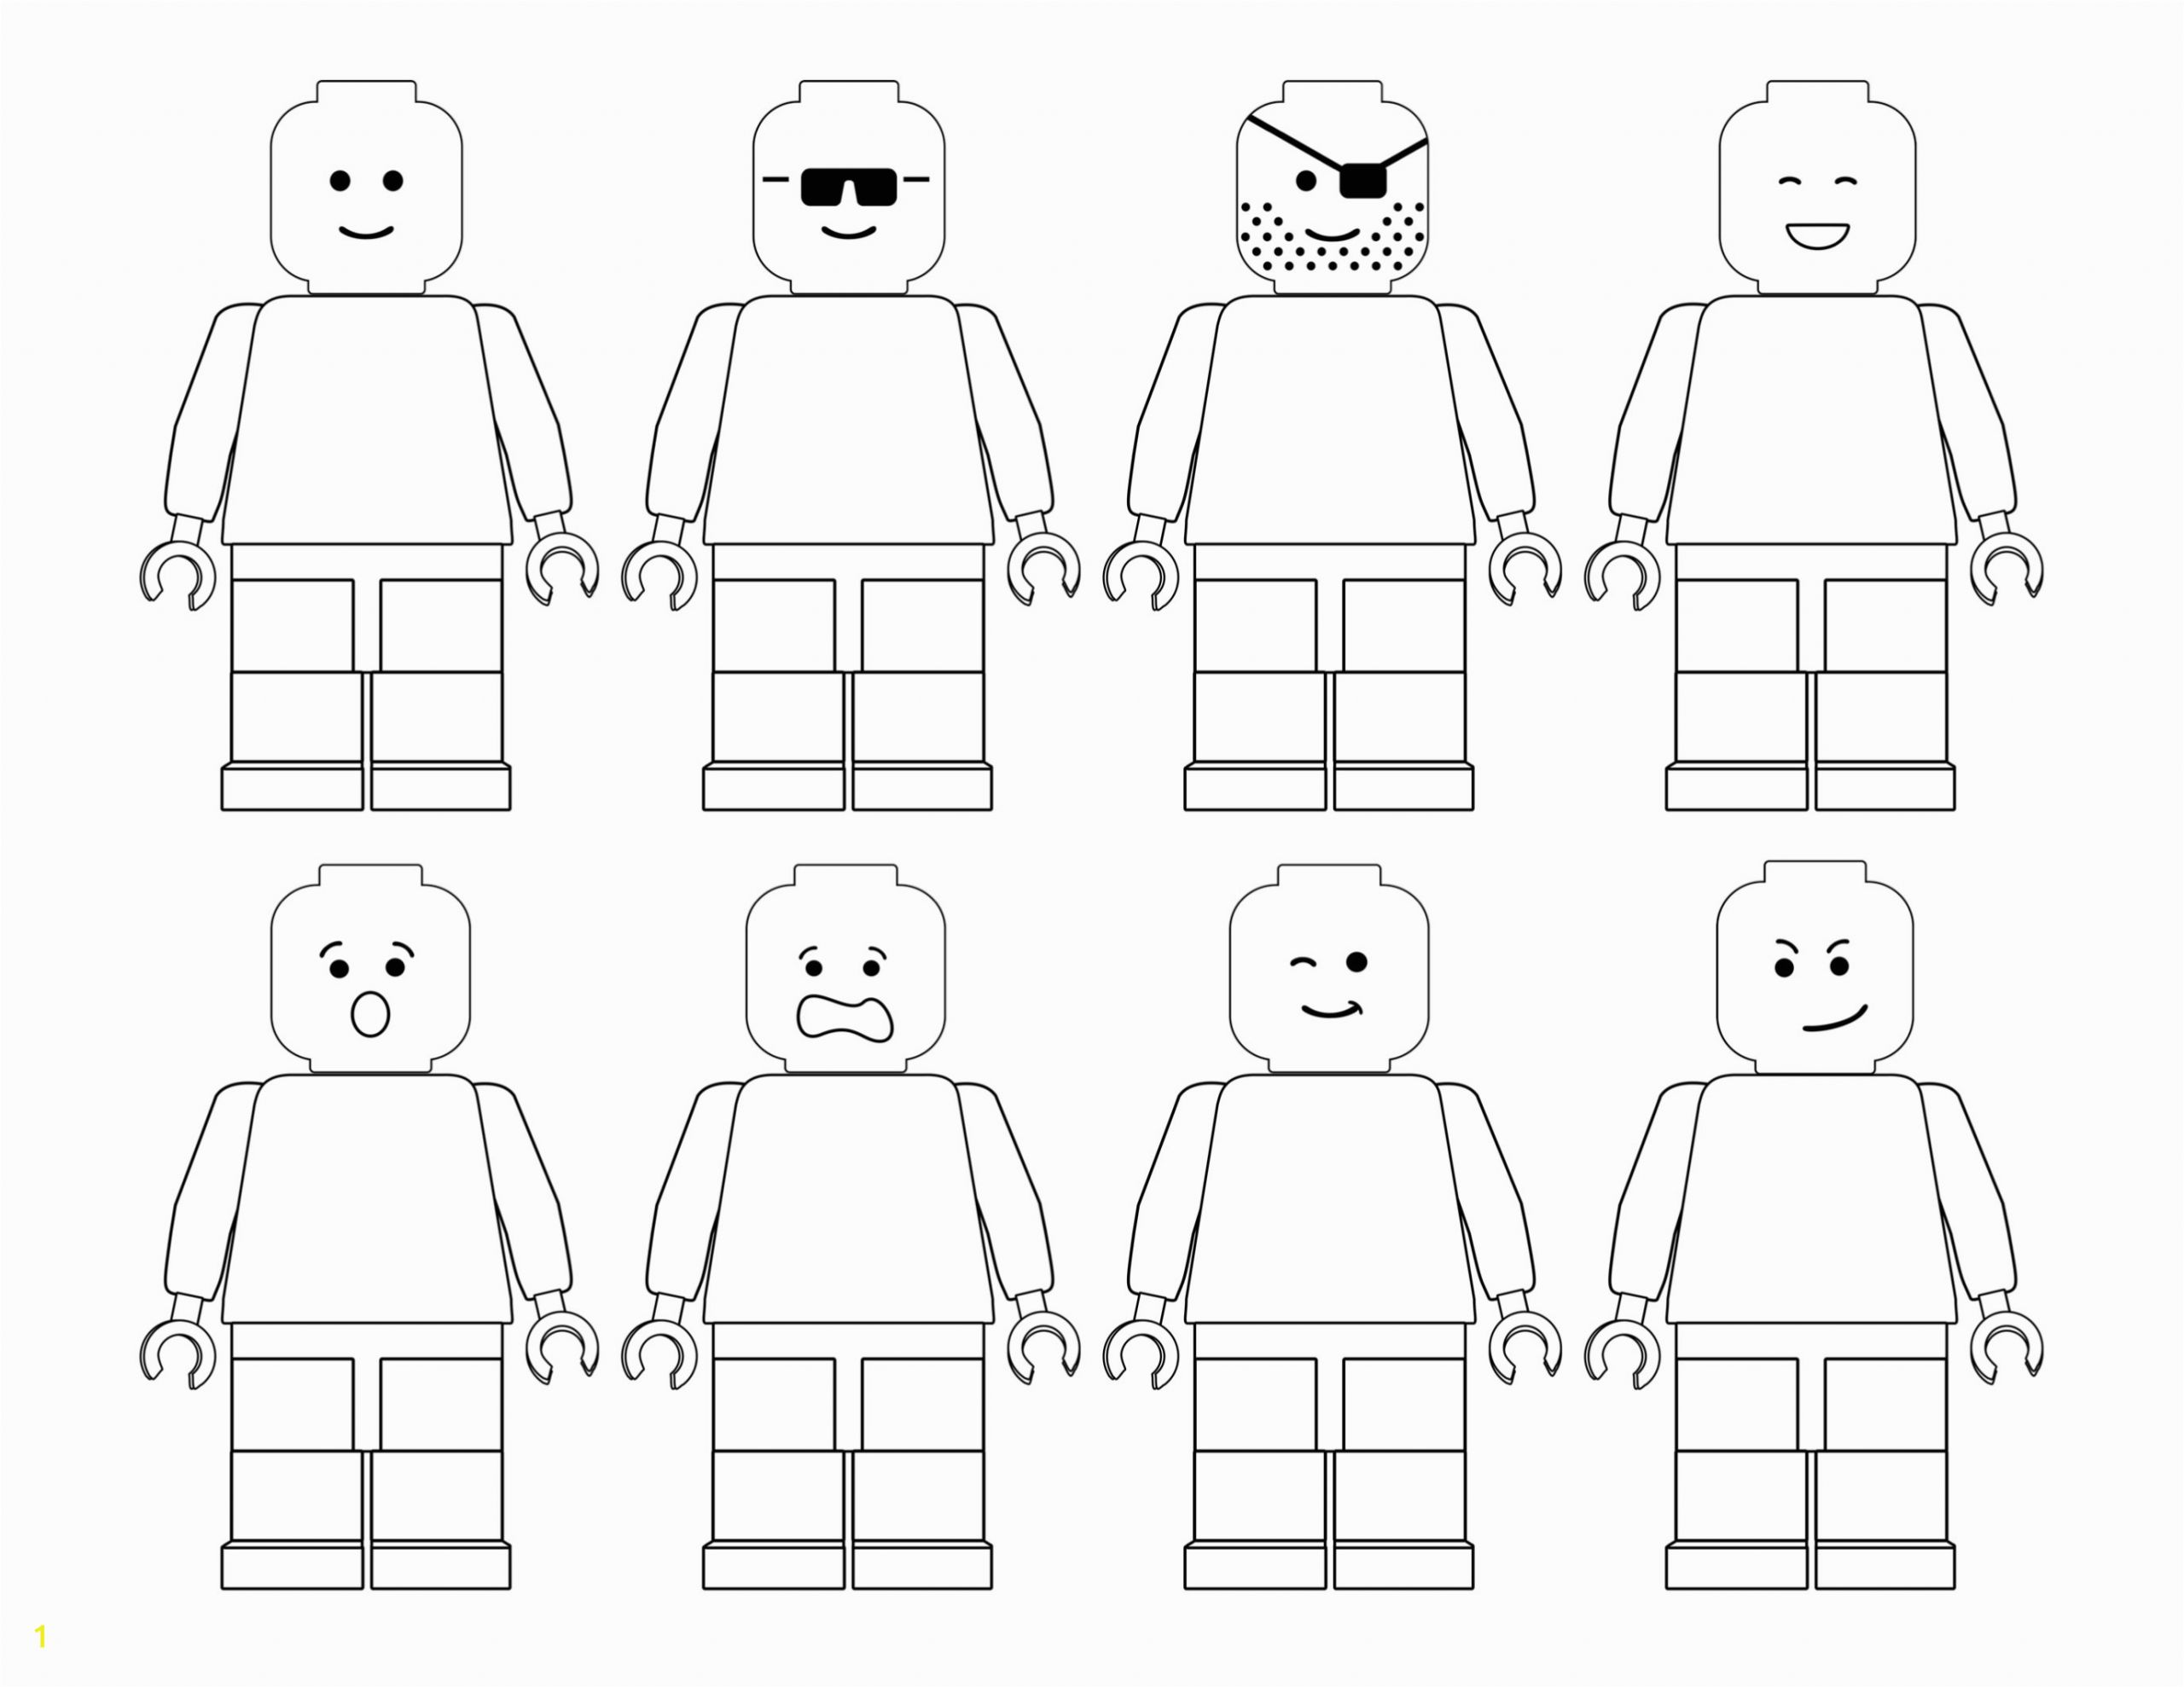 30c b279c5f c691eb0 free printable lego coloring pages paper trail design 2750 2125